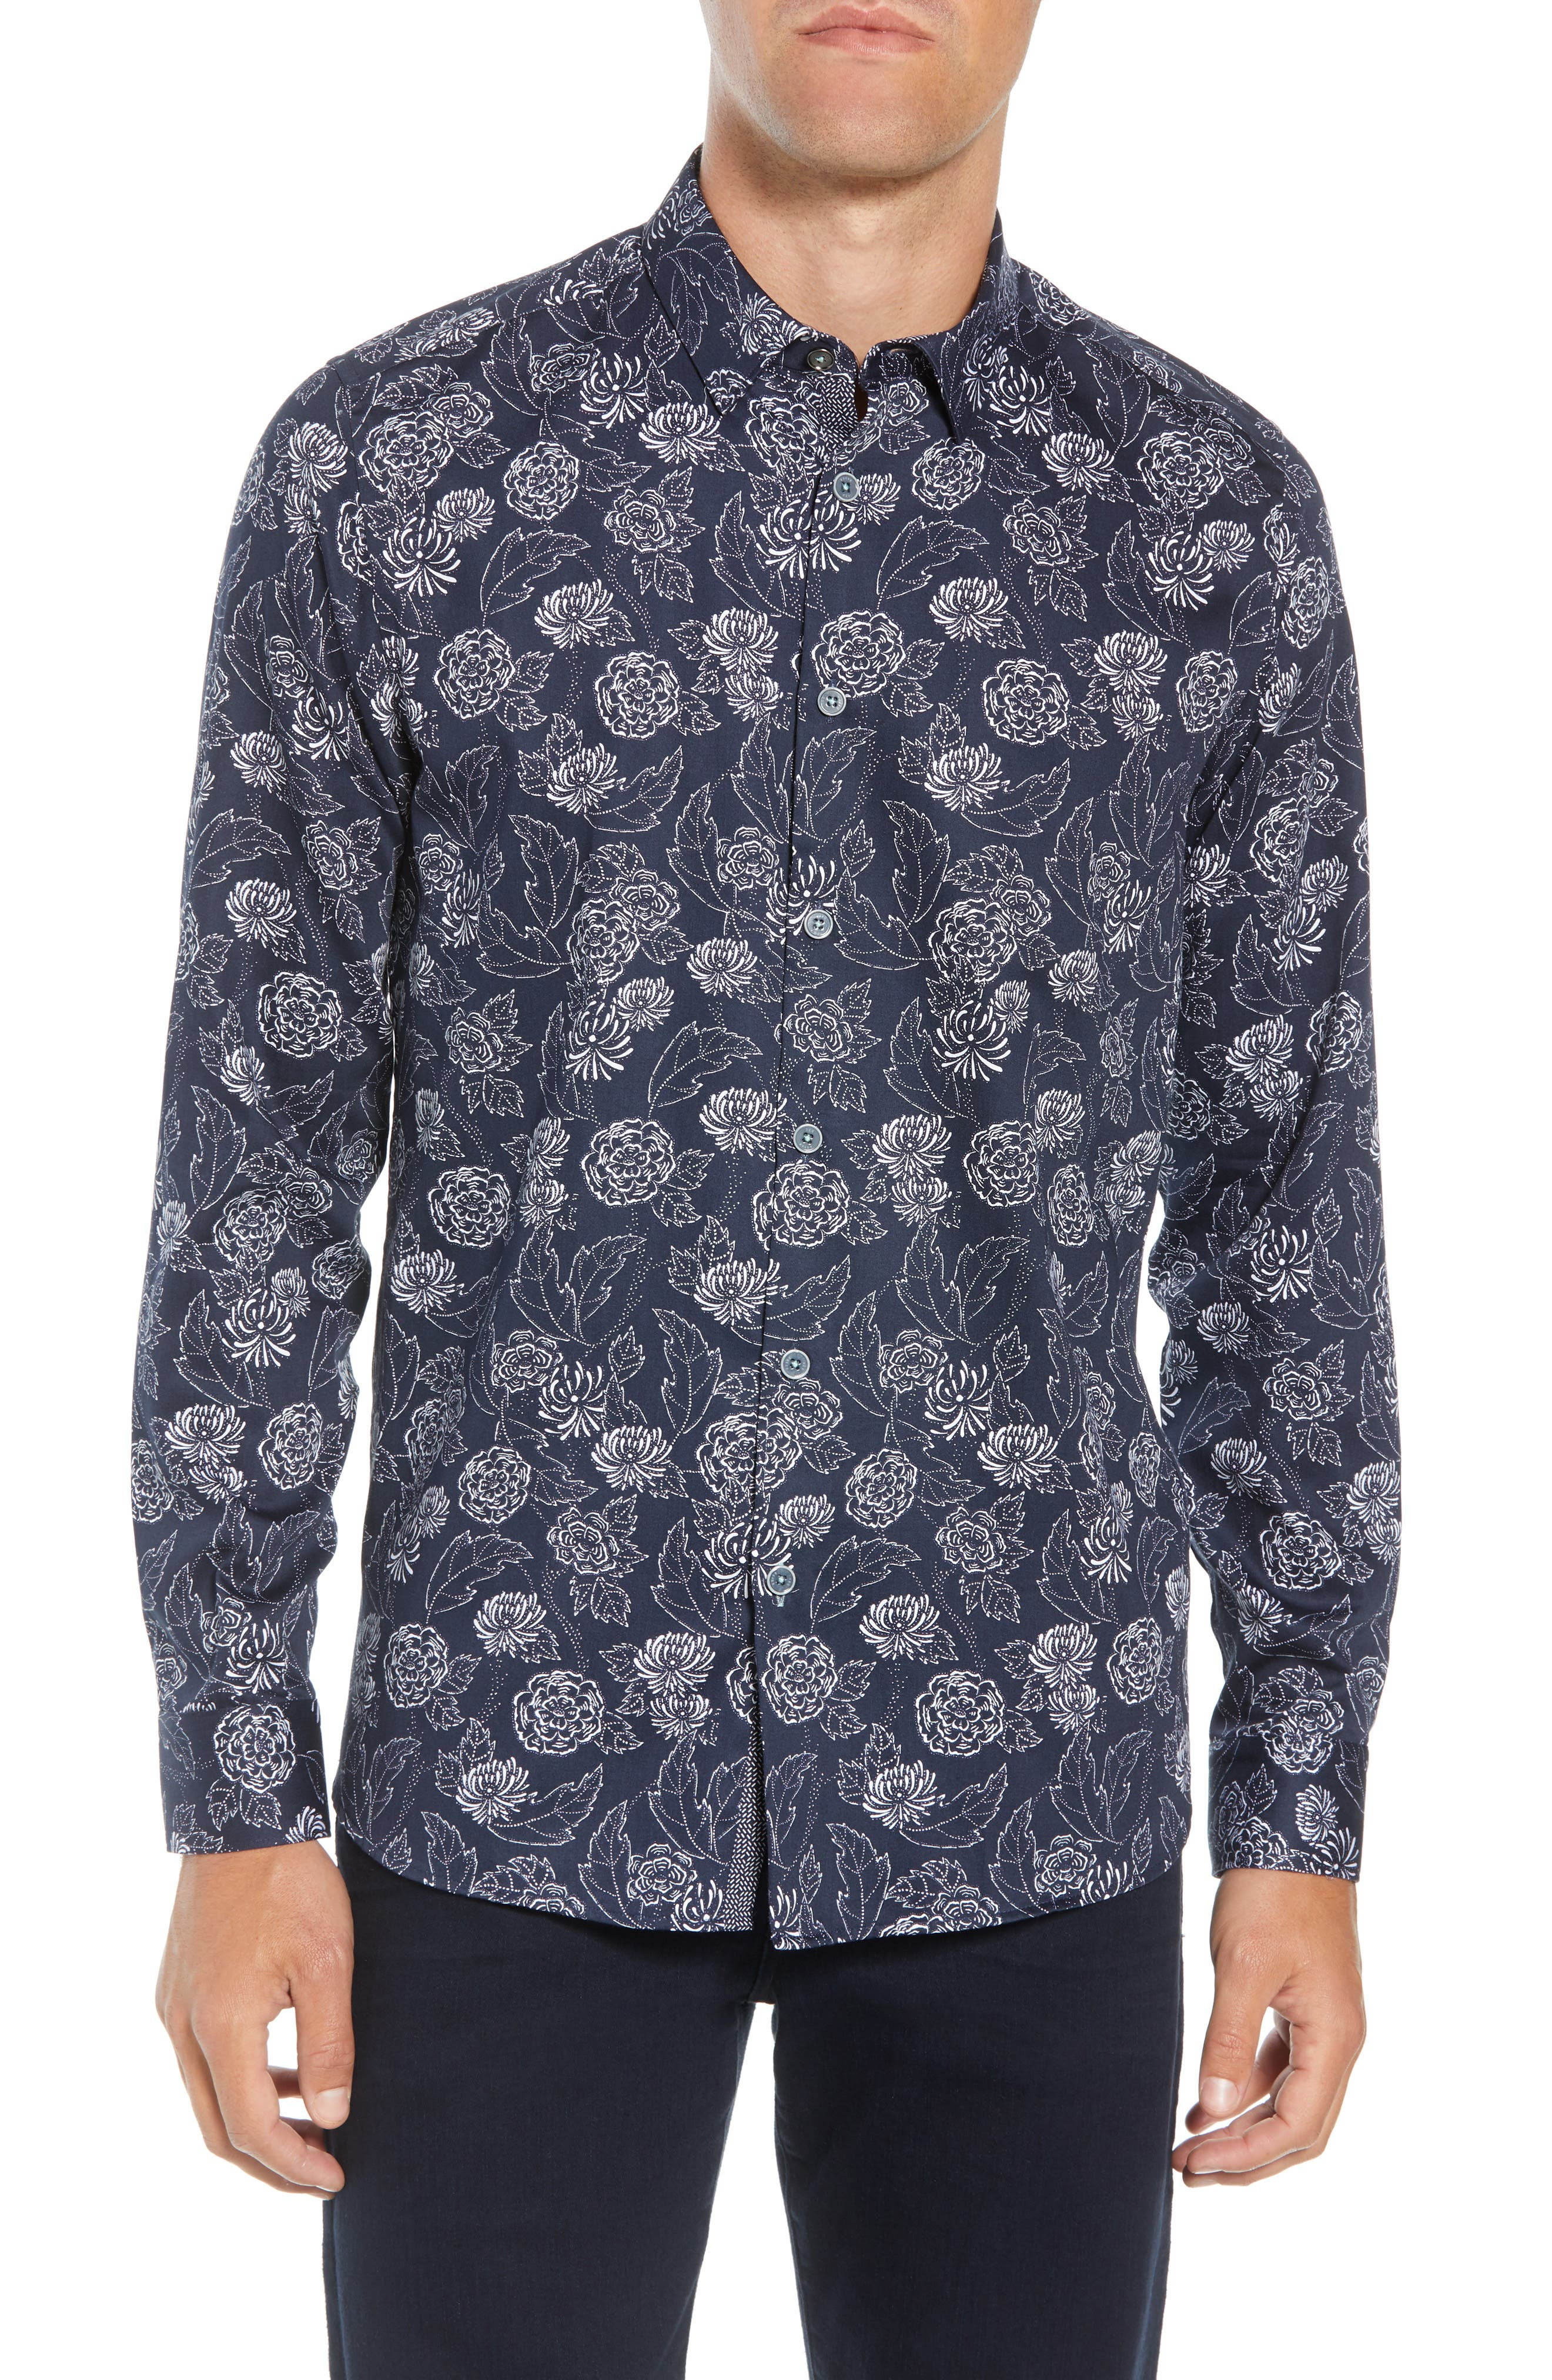 TED BAKER Teval Dotted Floral Regular Fit Button-Down Shirt in Navy